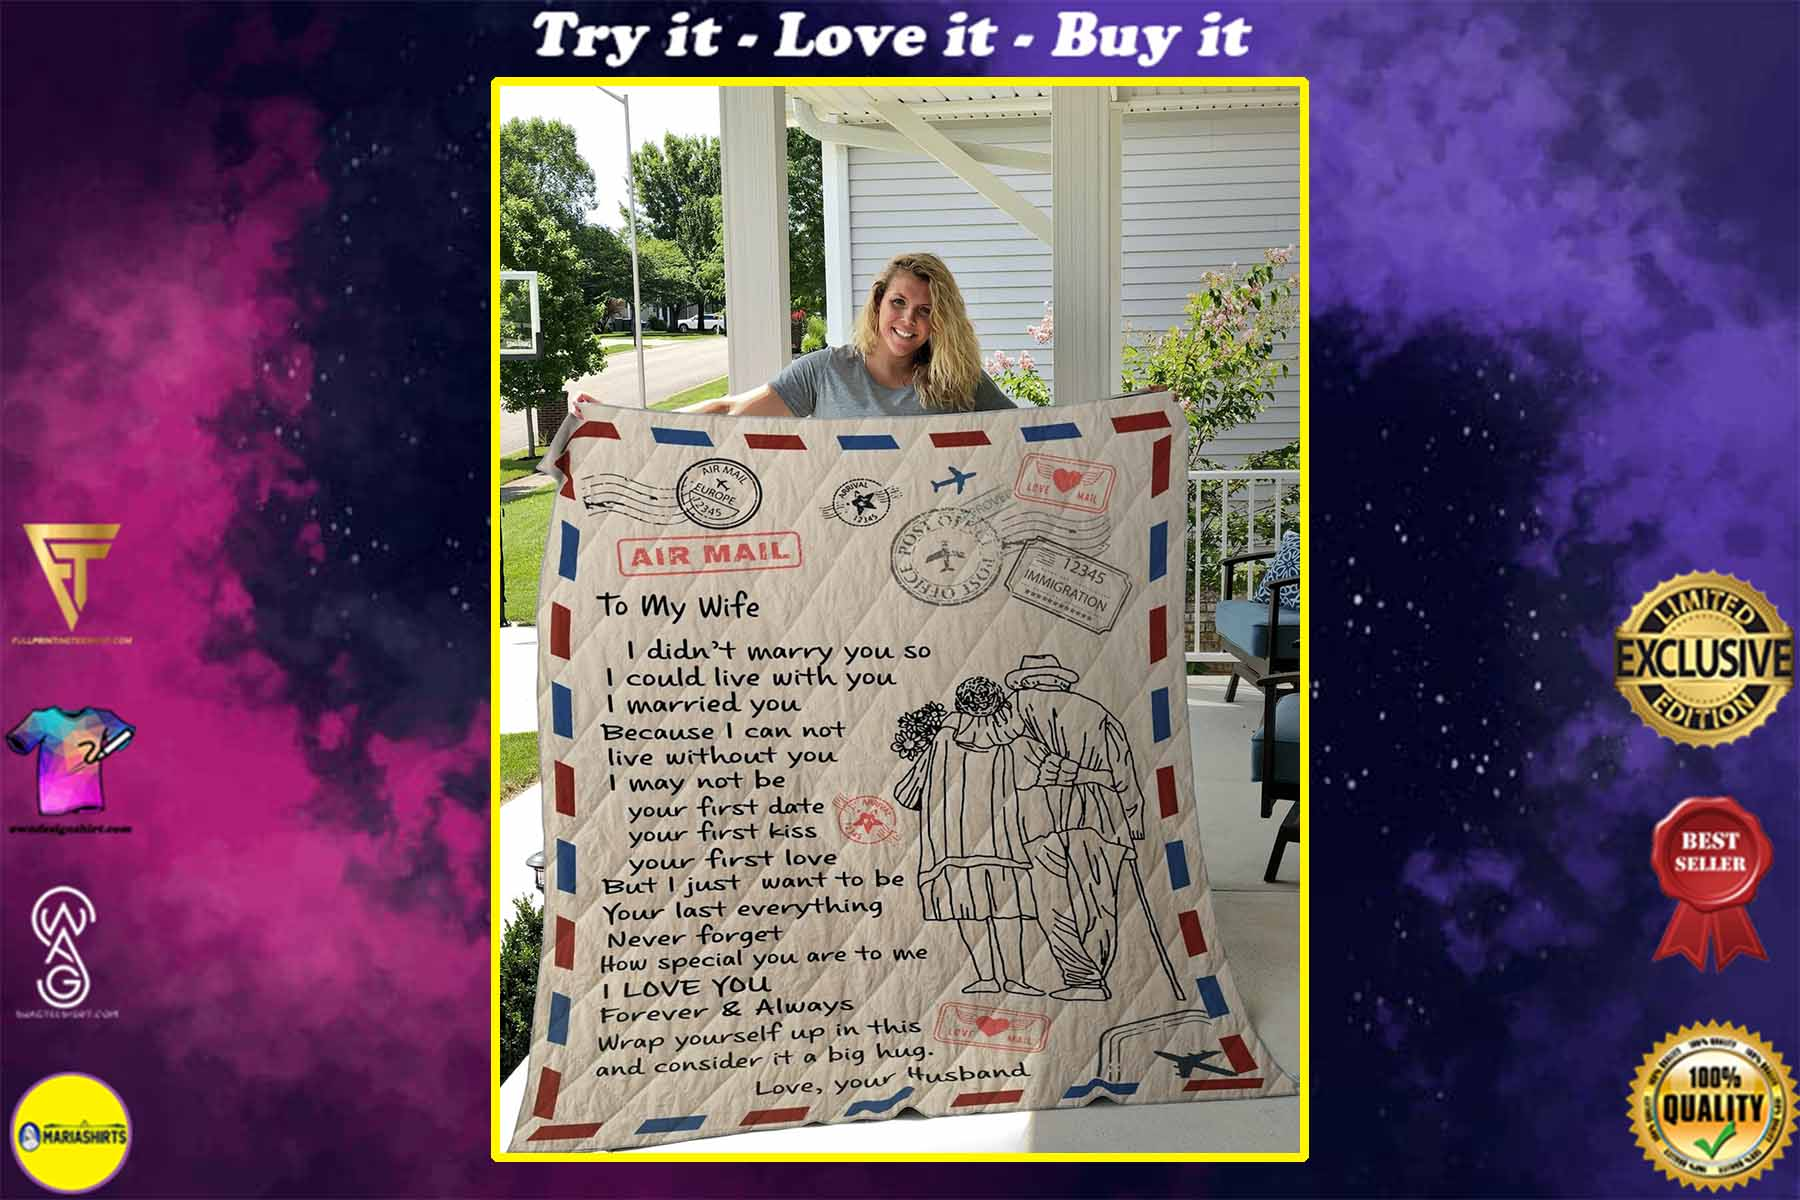 air mail letter to my wife i love you forever and always your husband quilt